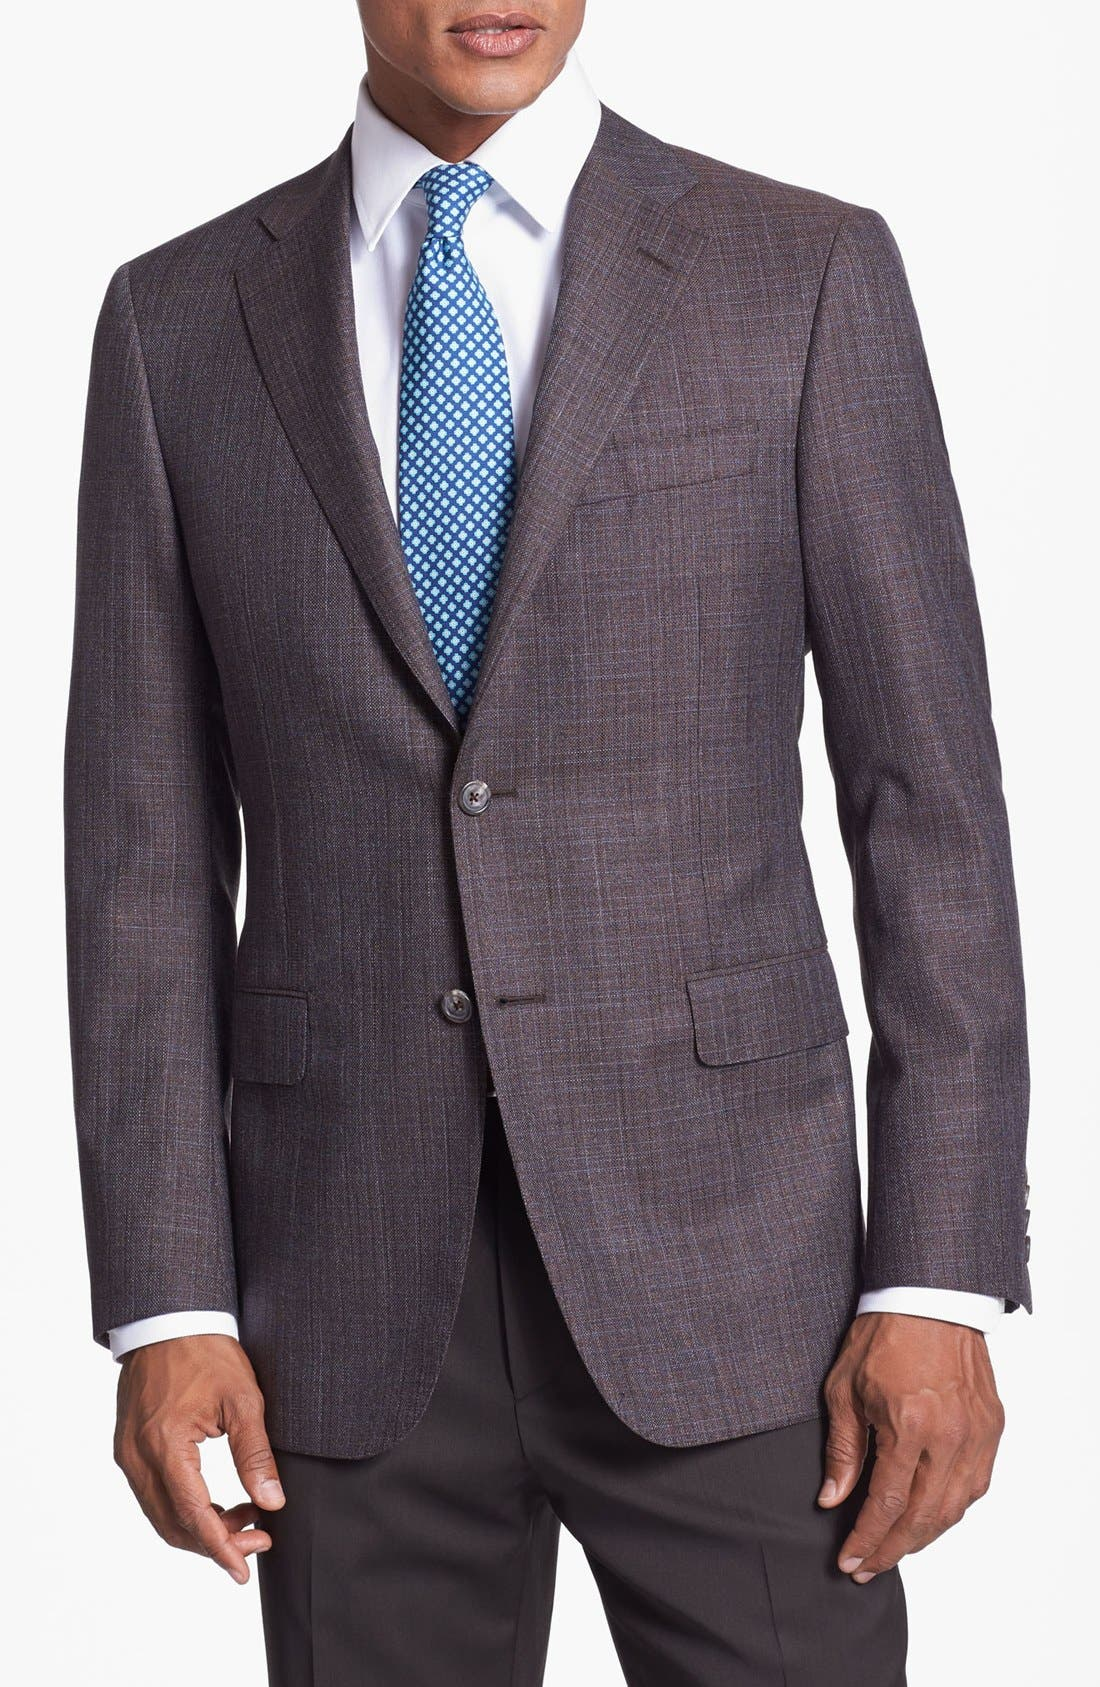 Main Image - Hickey Freeman Wool Blend Sportcoat